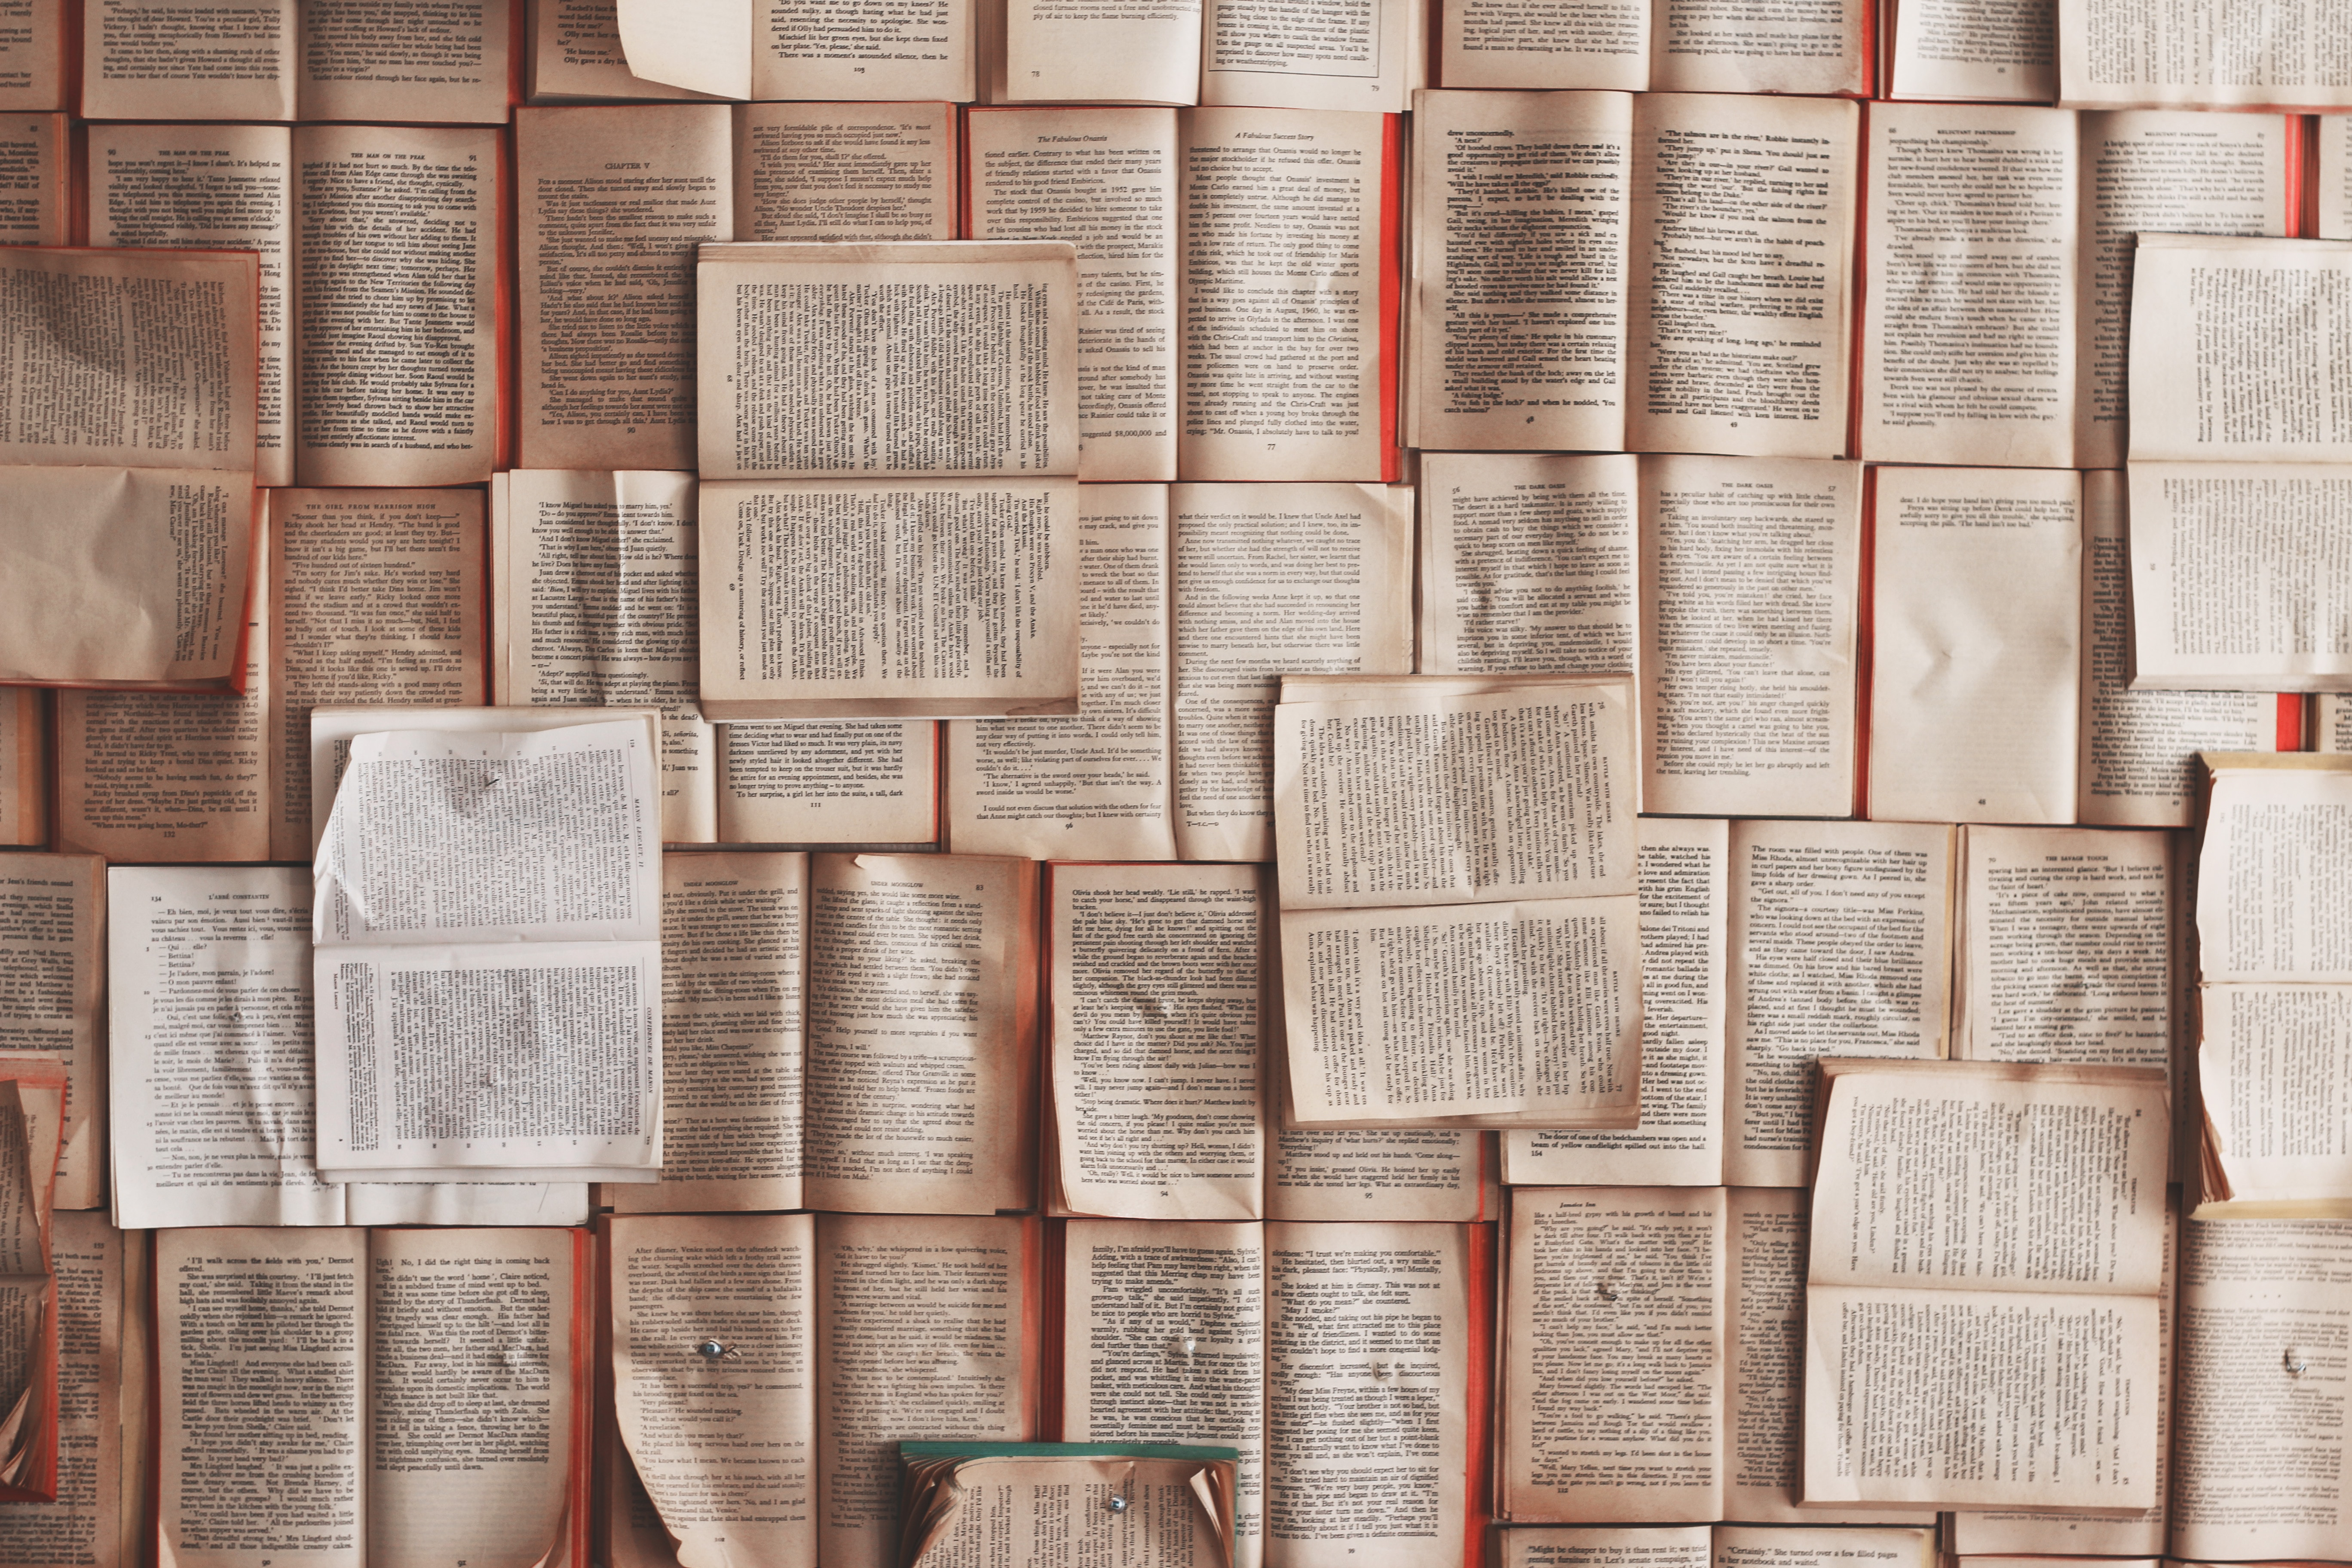 Data Wrangling for Text mining: Extract individual elements from a Book